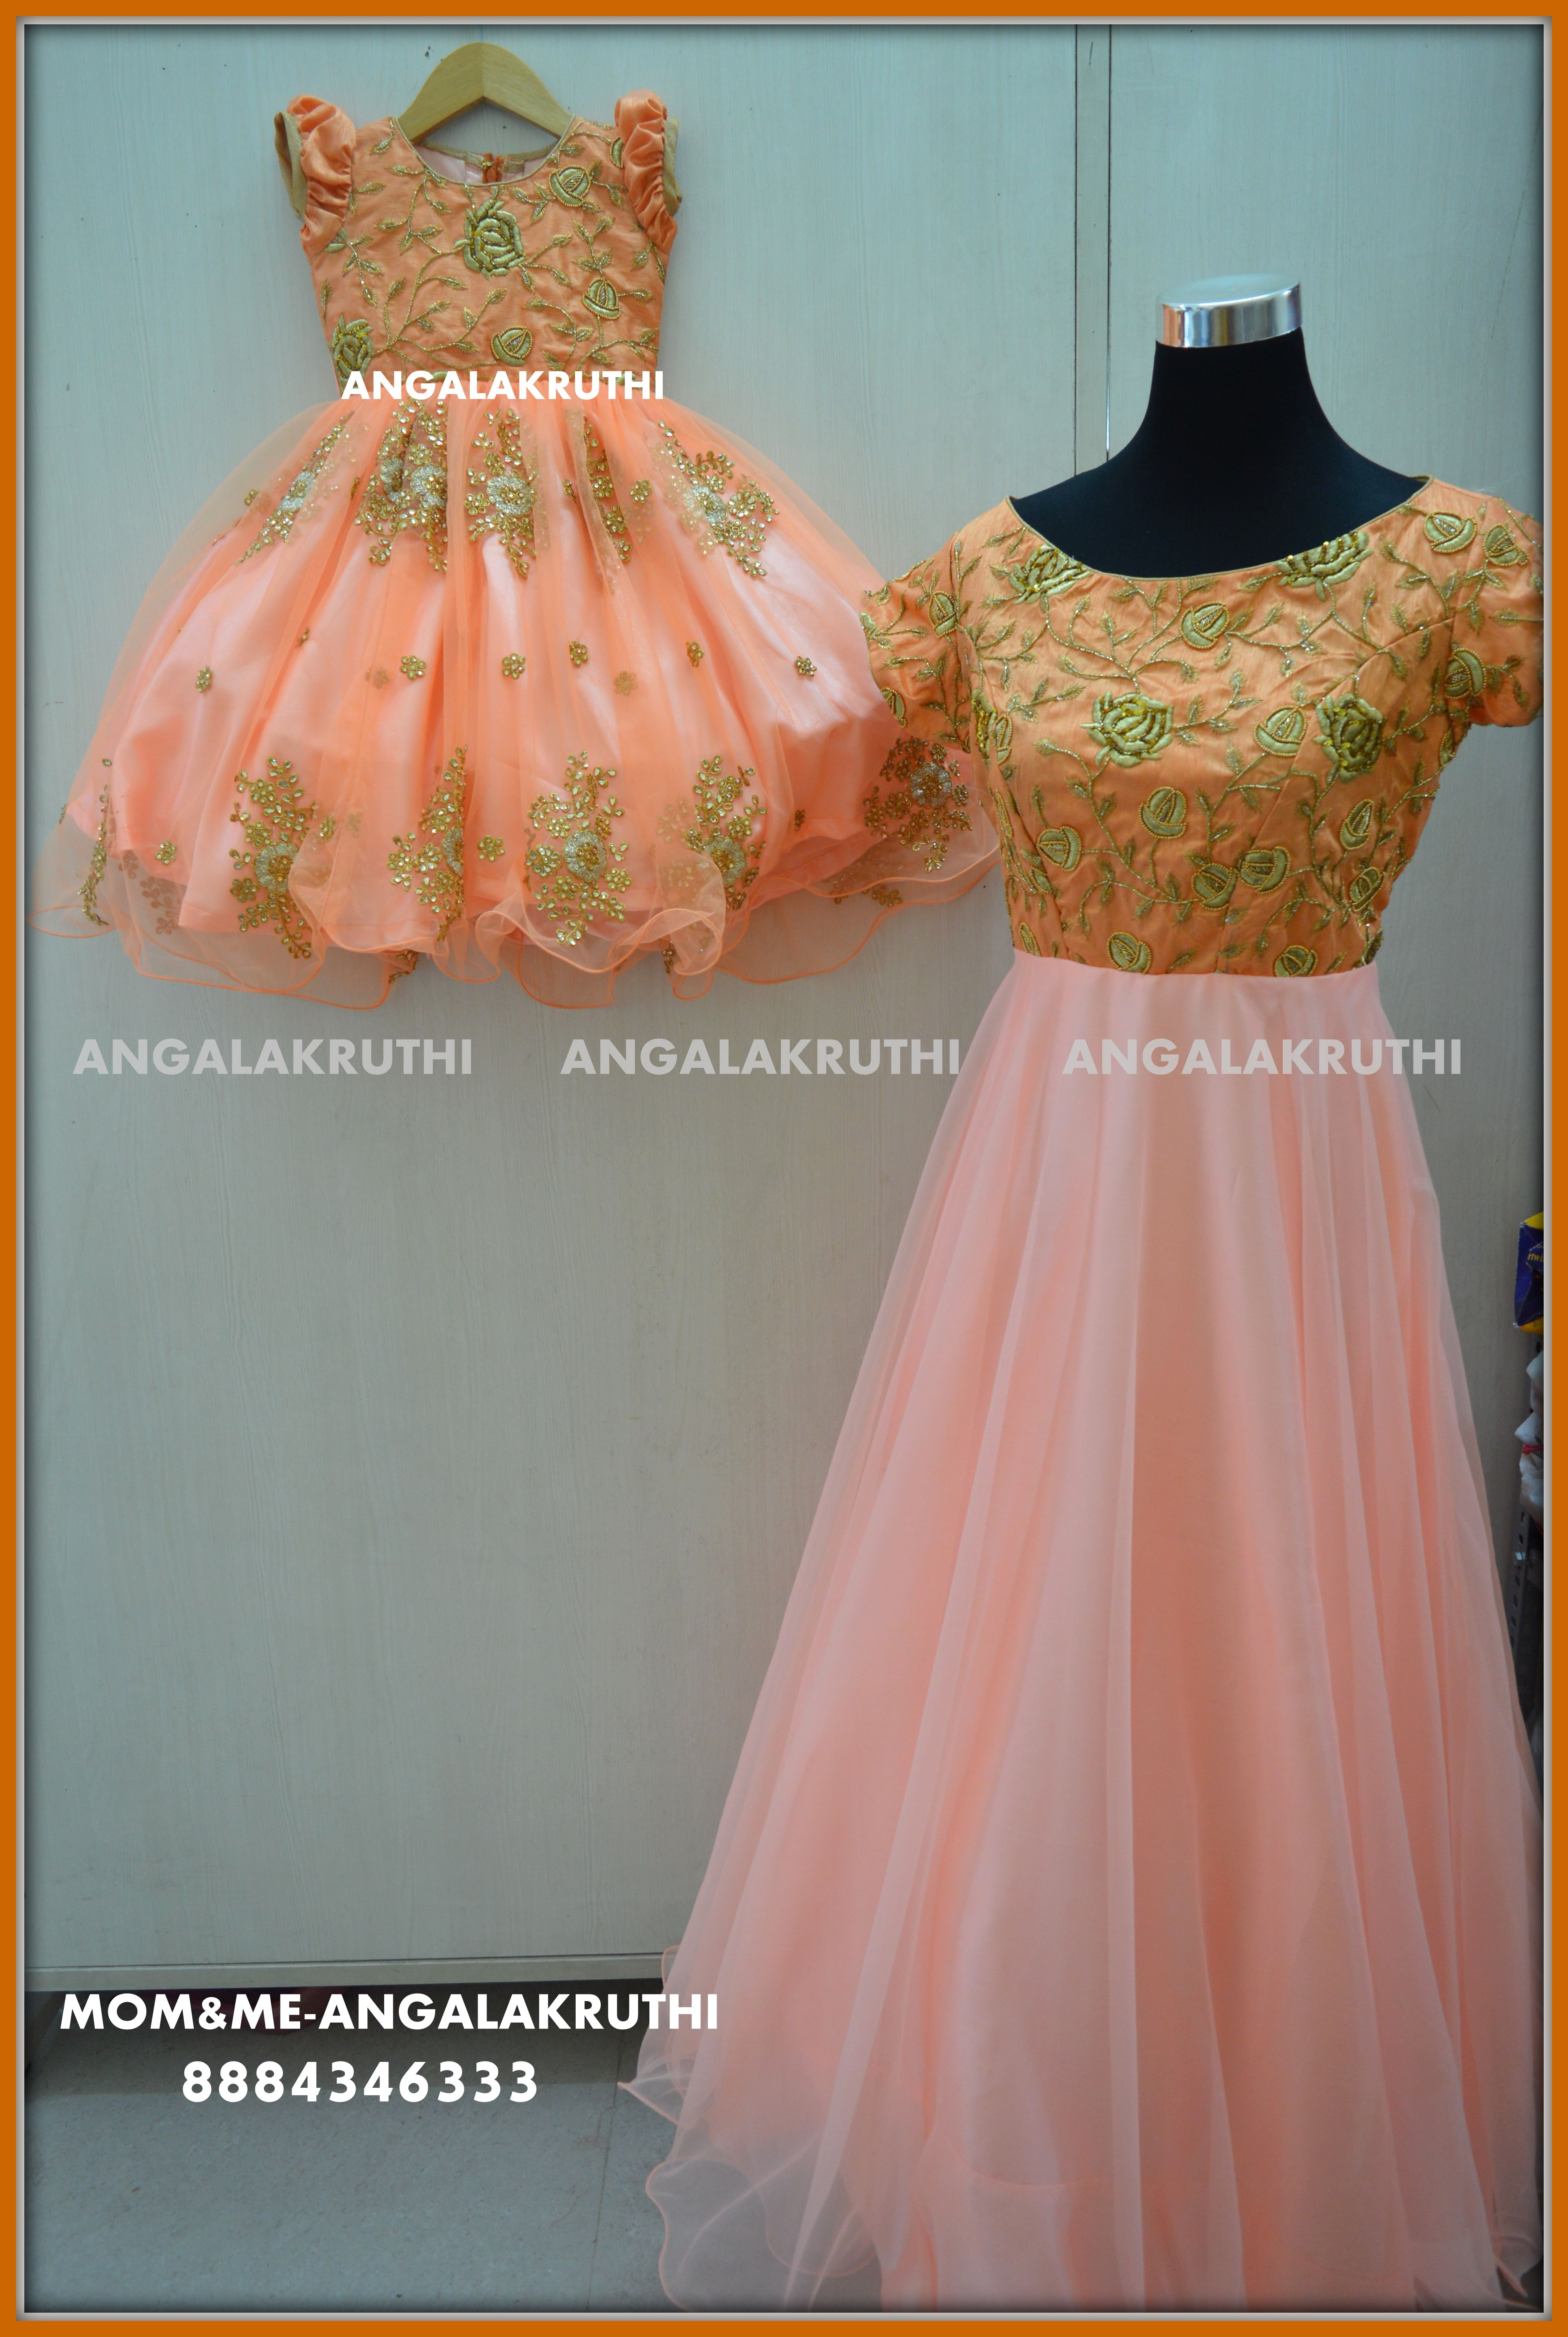 be74370f3f #Mother and daughter matching dress designs by Angalakruthi-Bangalore  boutique watsapp:8884346333 #Mom n Me designs #Kids frock with hand  embroidery